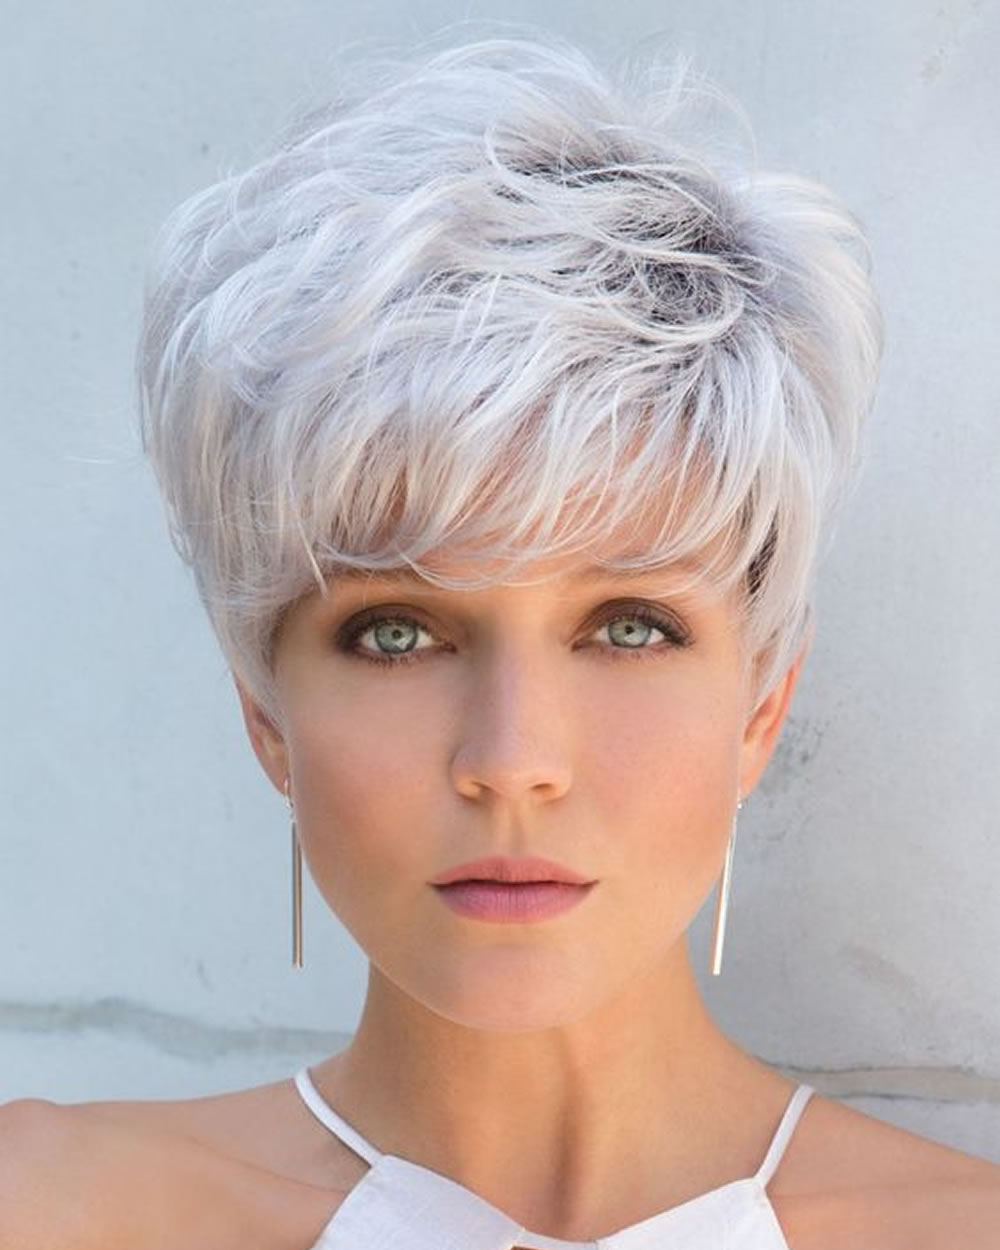 Short Hair Cut 2018 - Bob & Pixie Hair Styles for Ladies - Fashionre